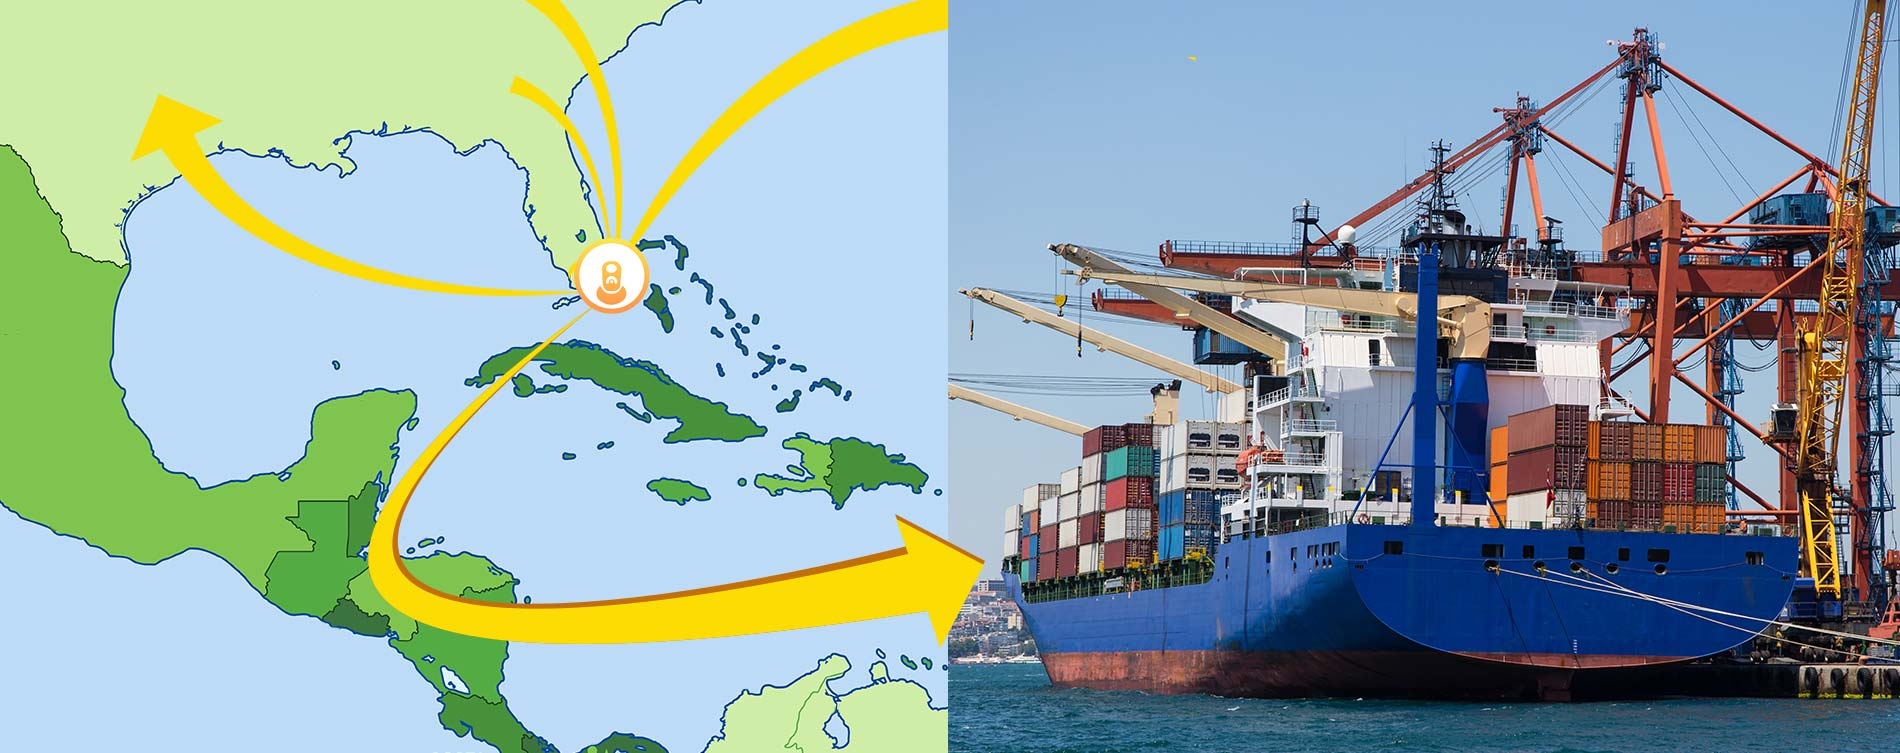 map and cargo ship